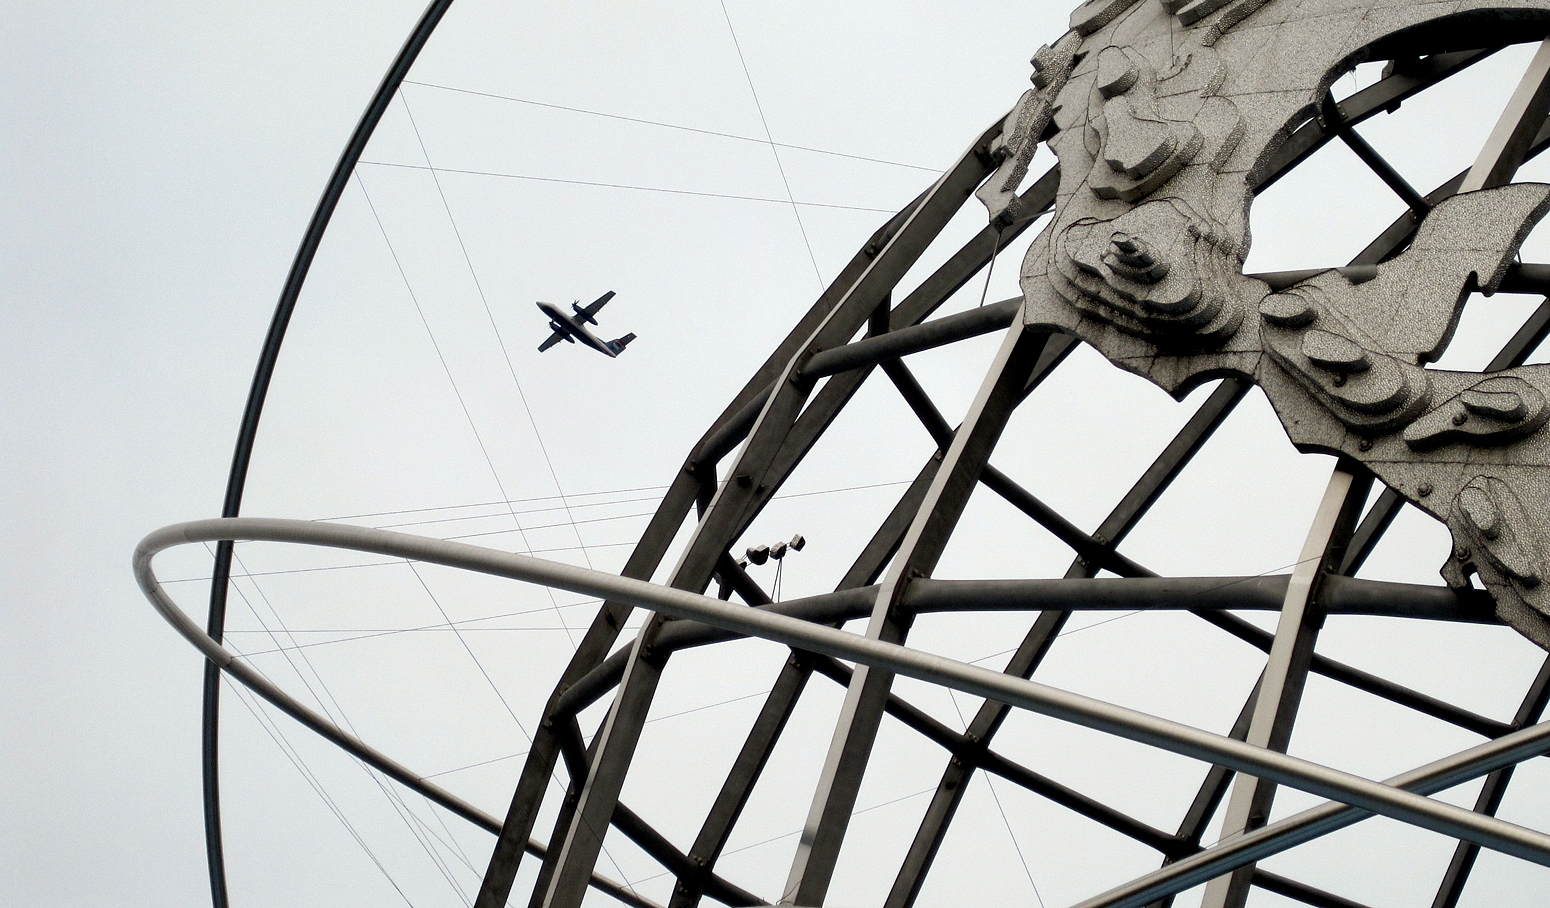 Metal sculpture of the globe frames aircraft's flight in gray skies.